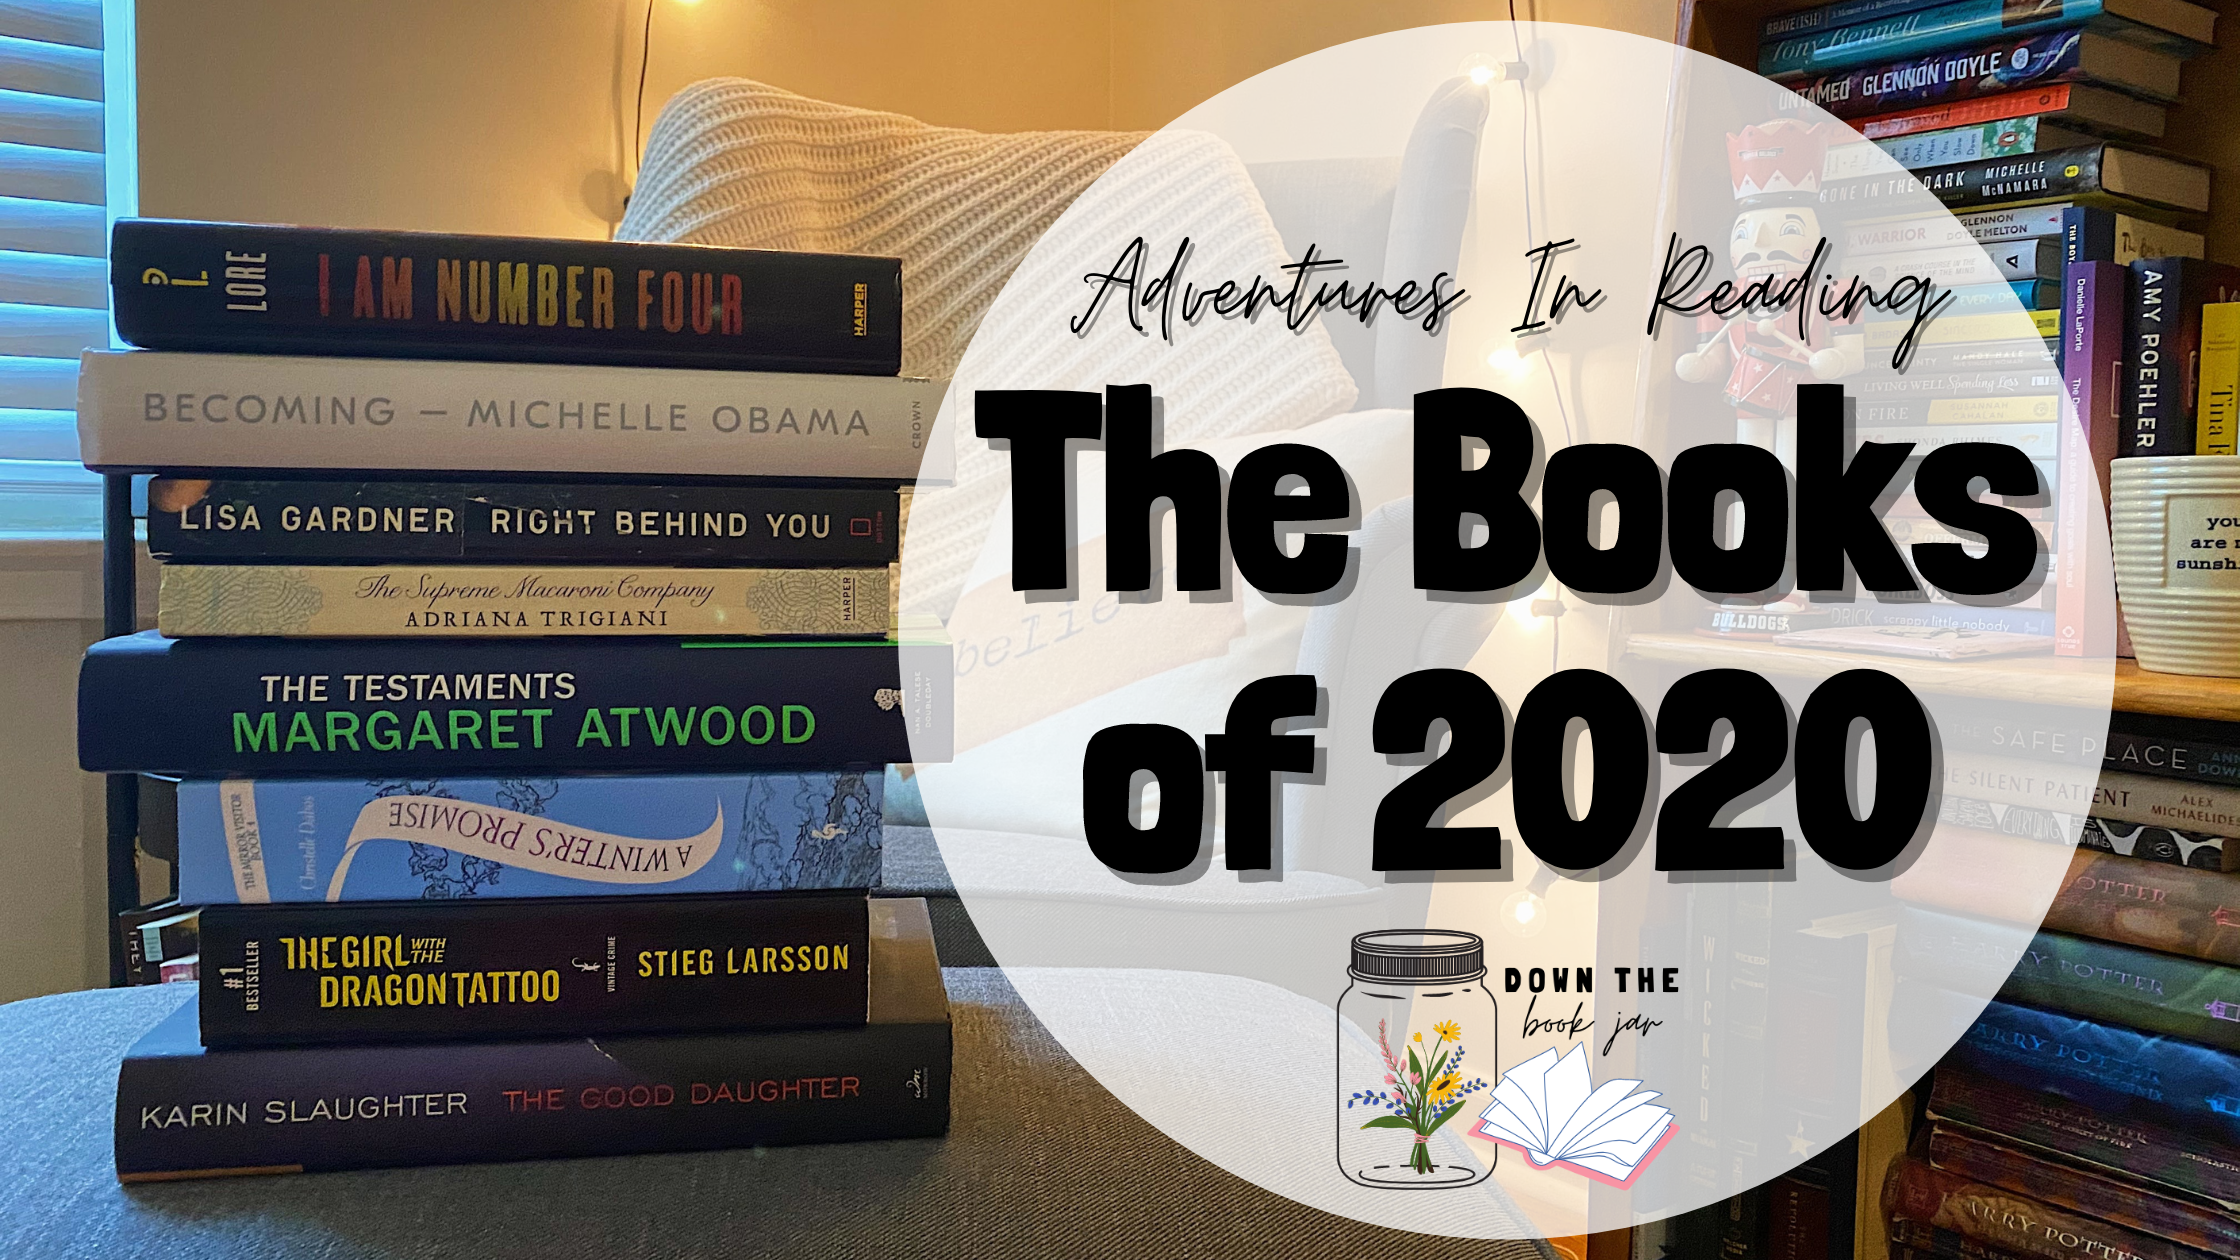 The Books of 2020